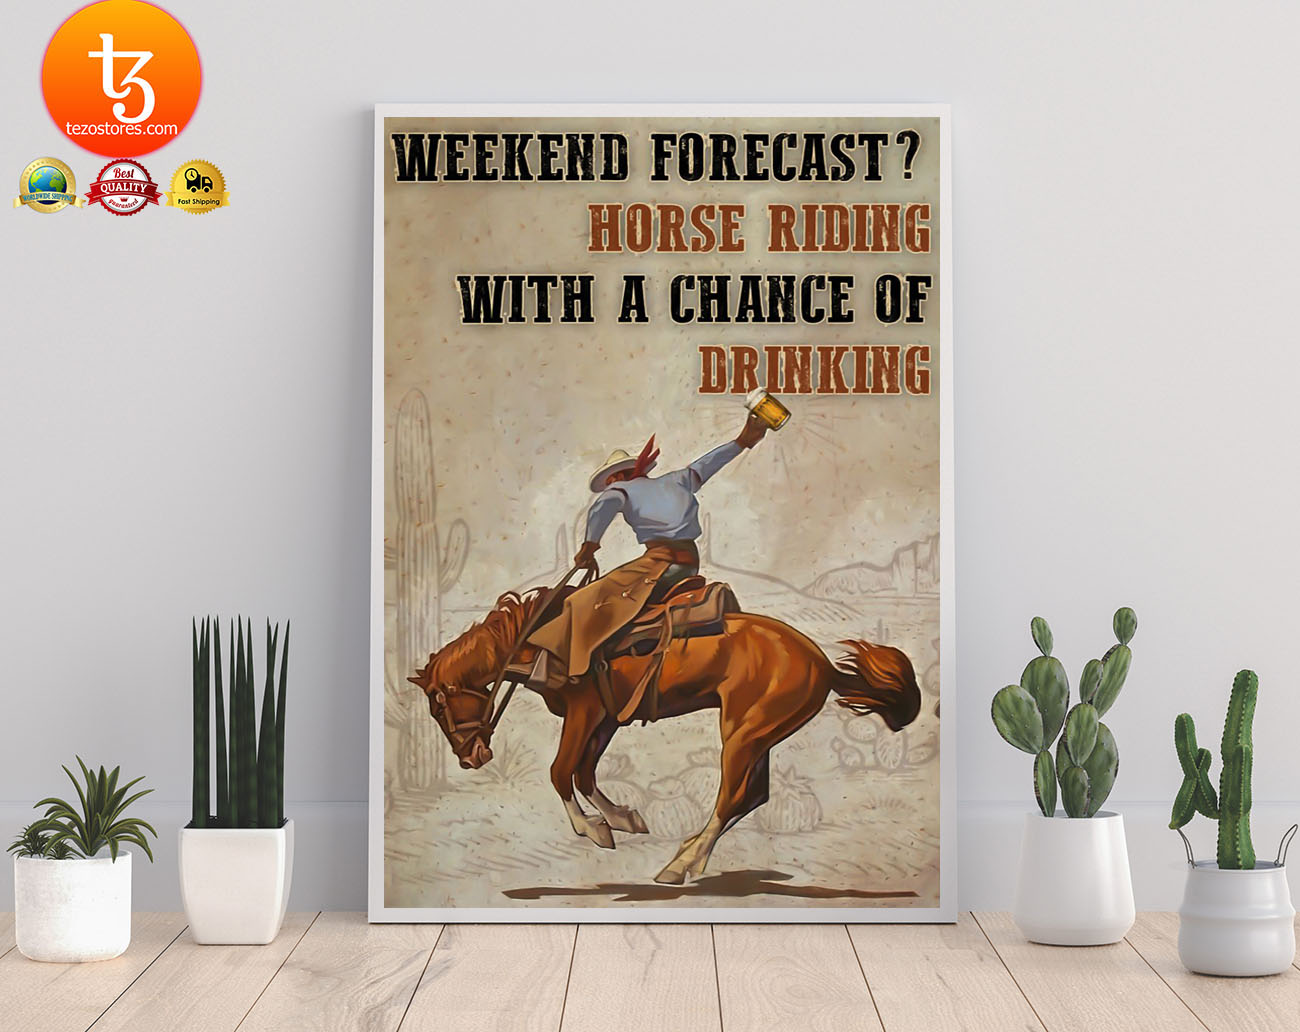 Weekend forecast horse riding with a chance of drinking poster 19